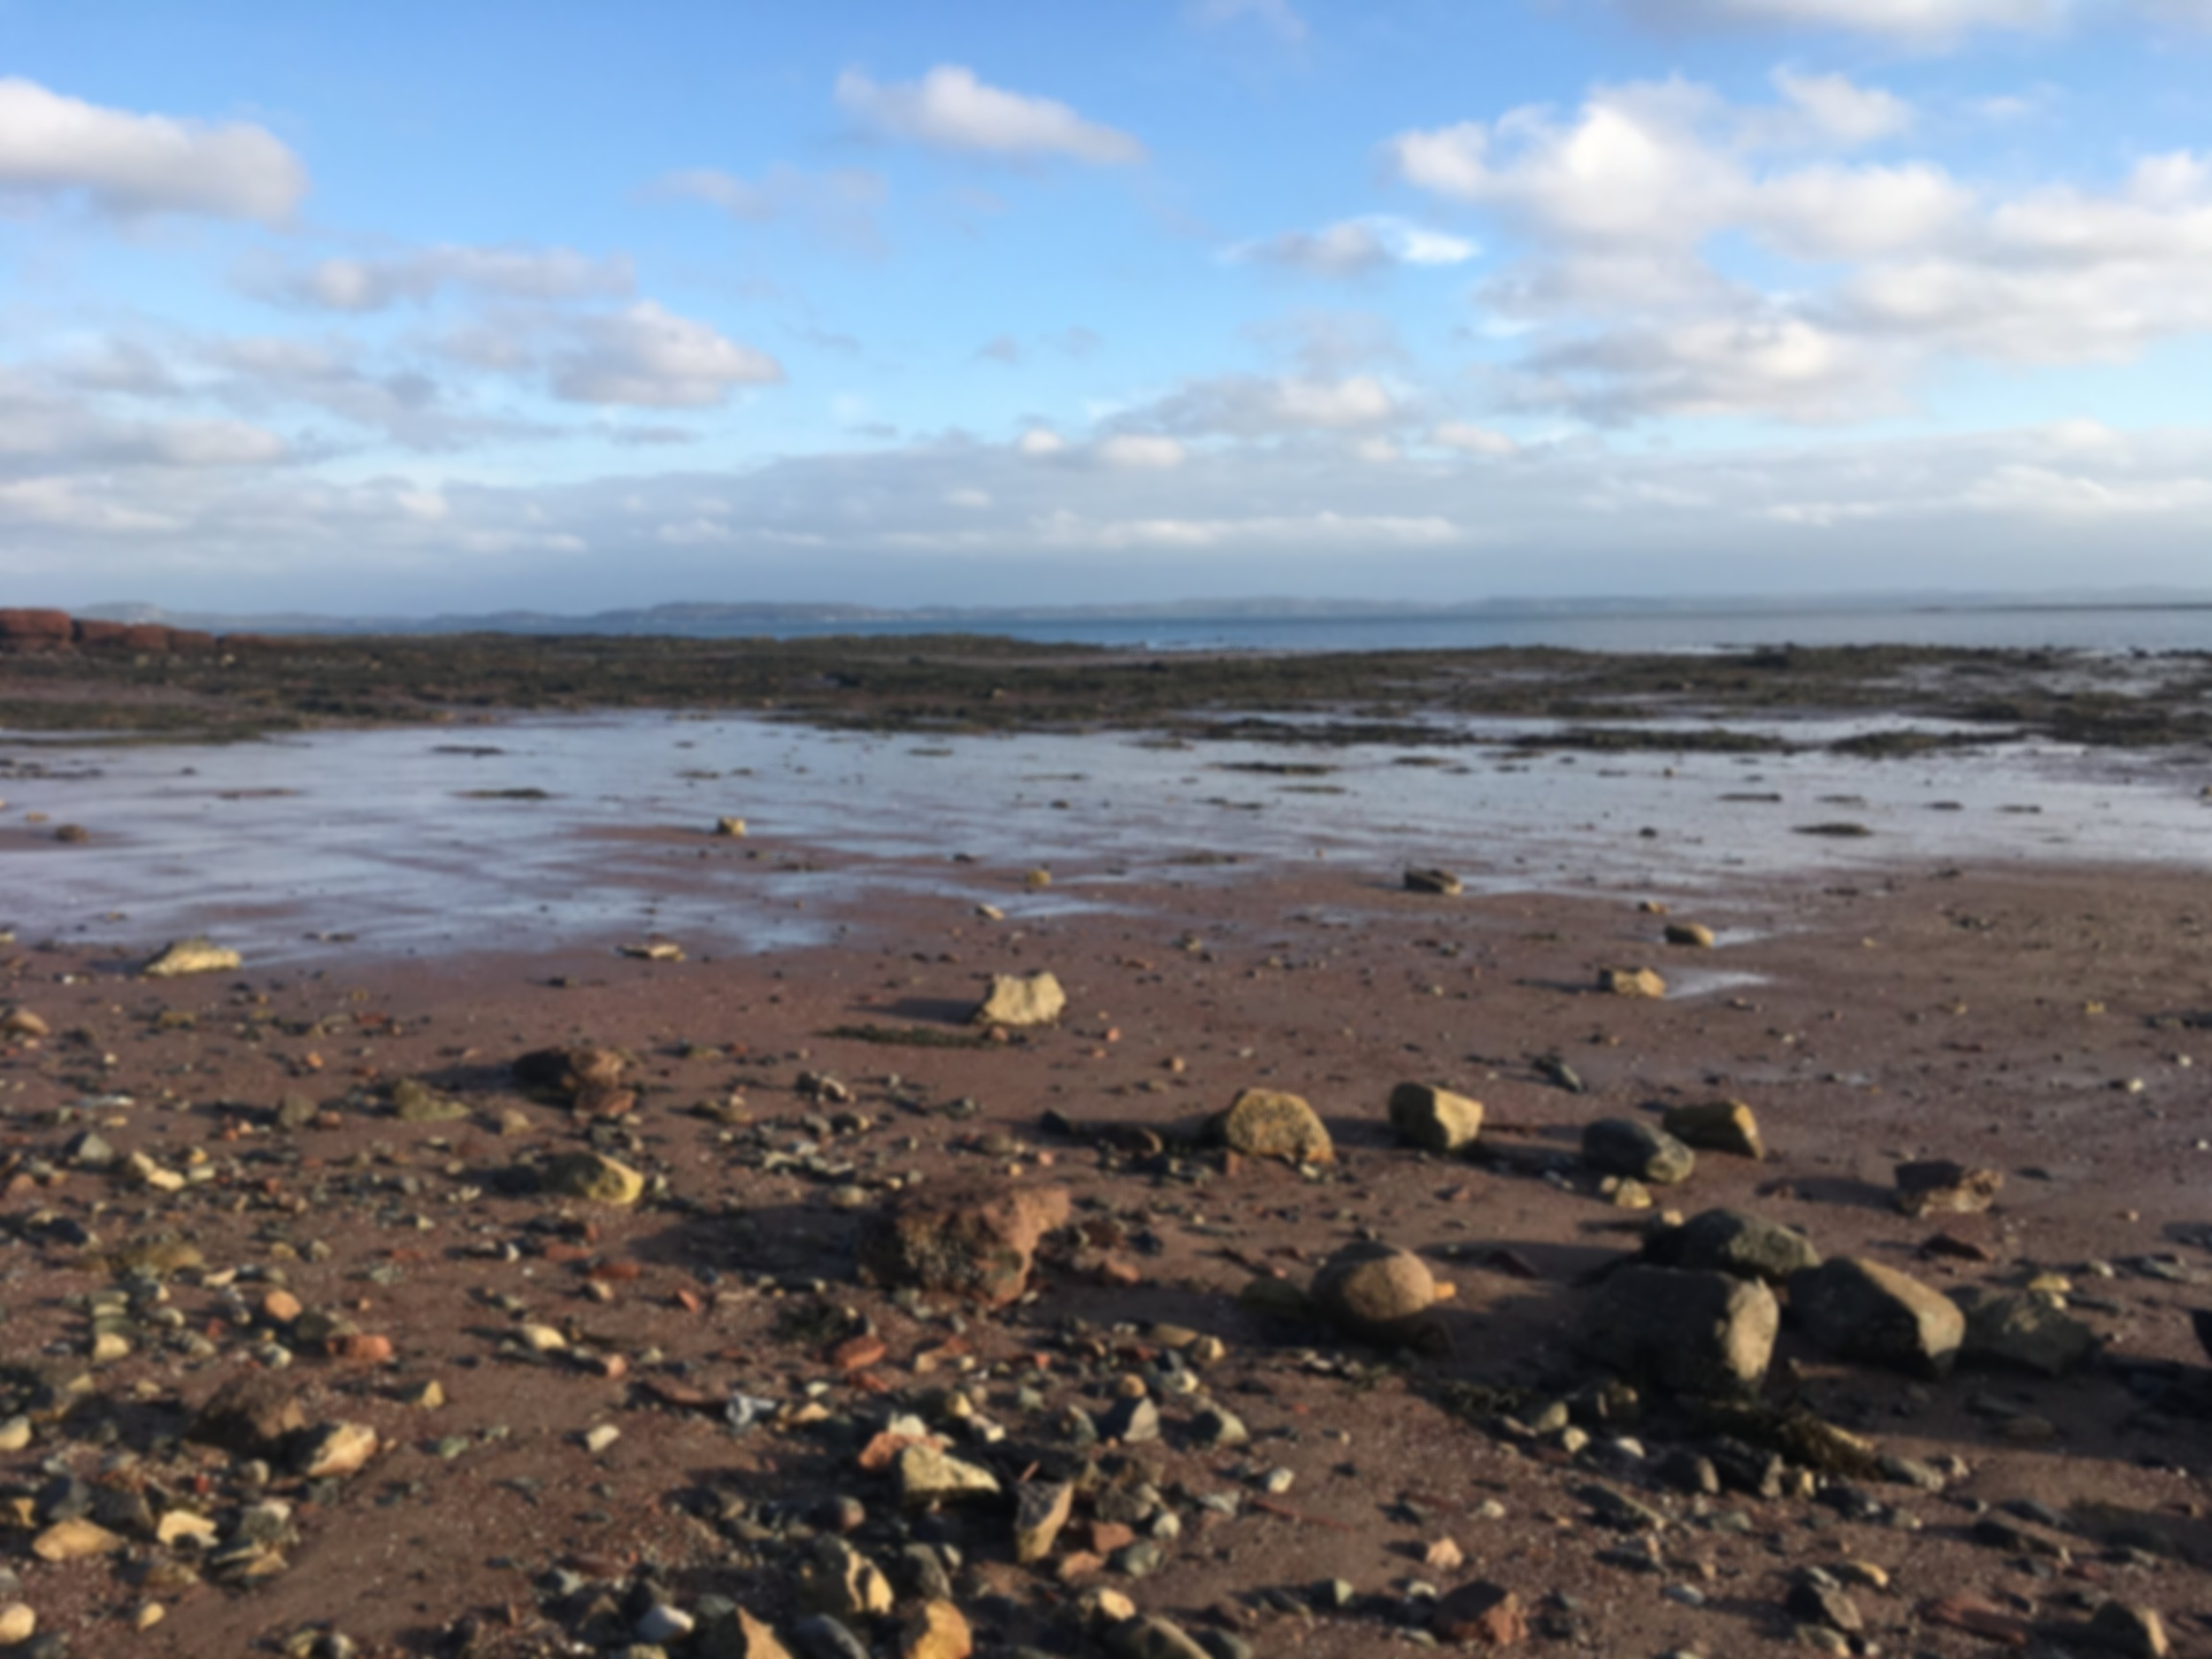 Reimagining the Blue Economy - Five Women's Perspectives on the Bay of Fundy